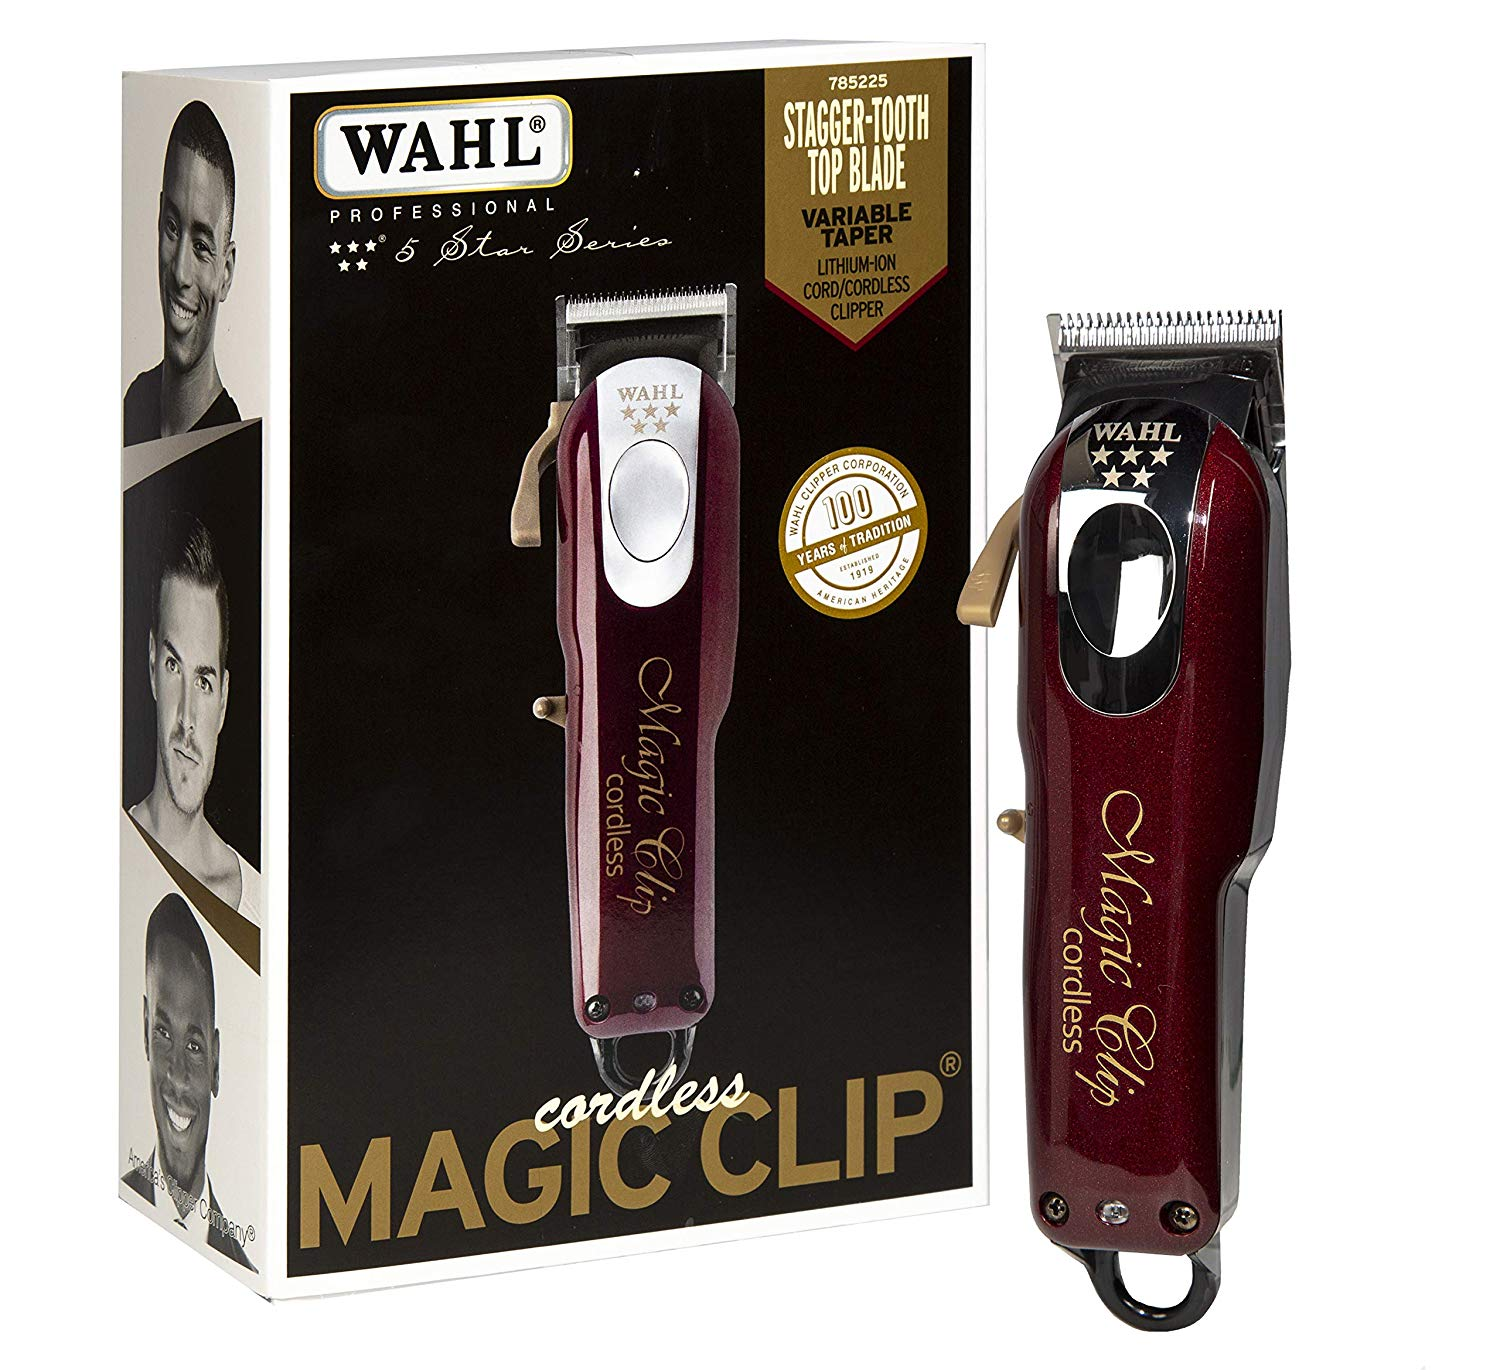 Wahl Professional 5 Star Cord Cordless Magic Clip 8148  Great for Barbers  Stylists  Precision Cordless Fade Clipper Loaded with Features  90 Minute Run Time